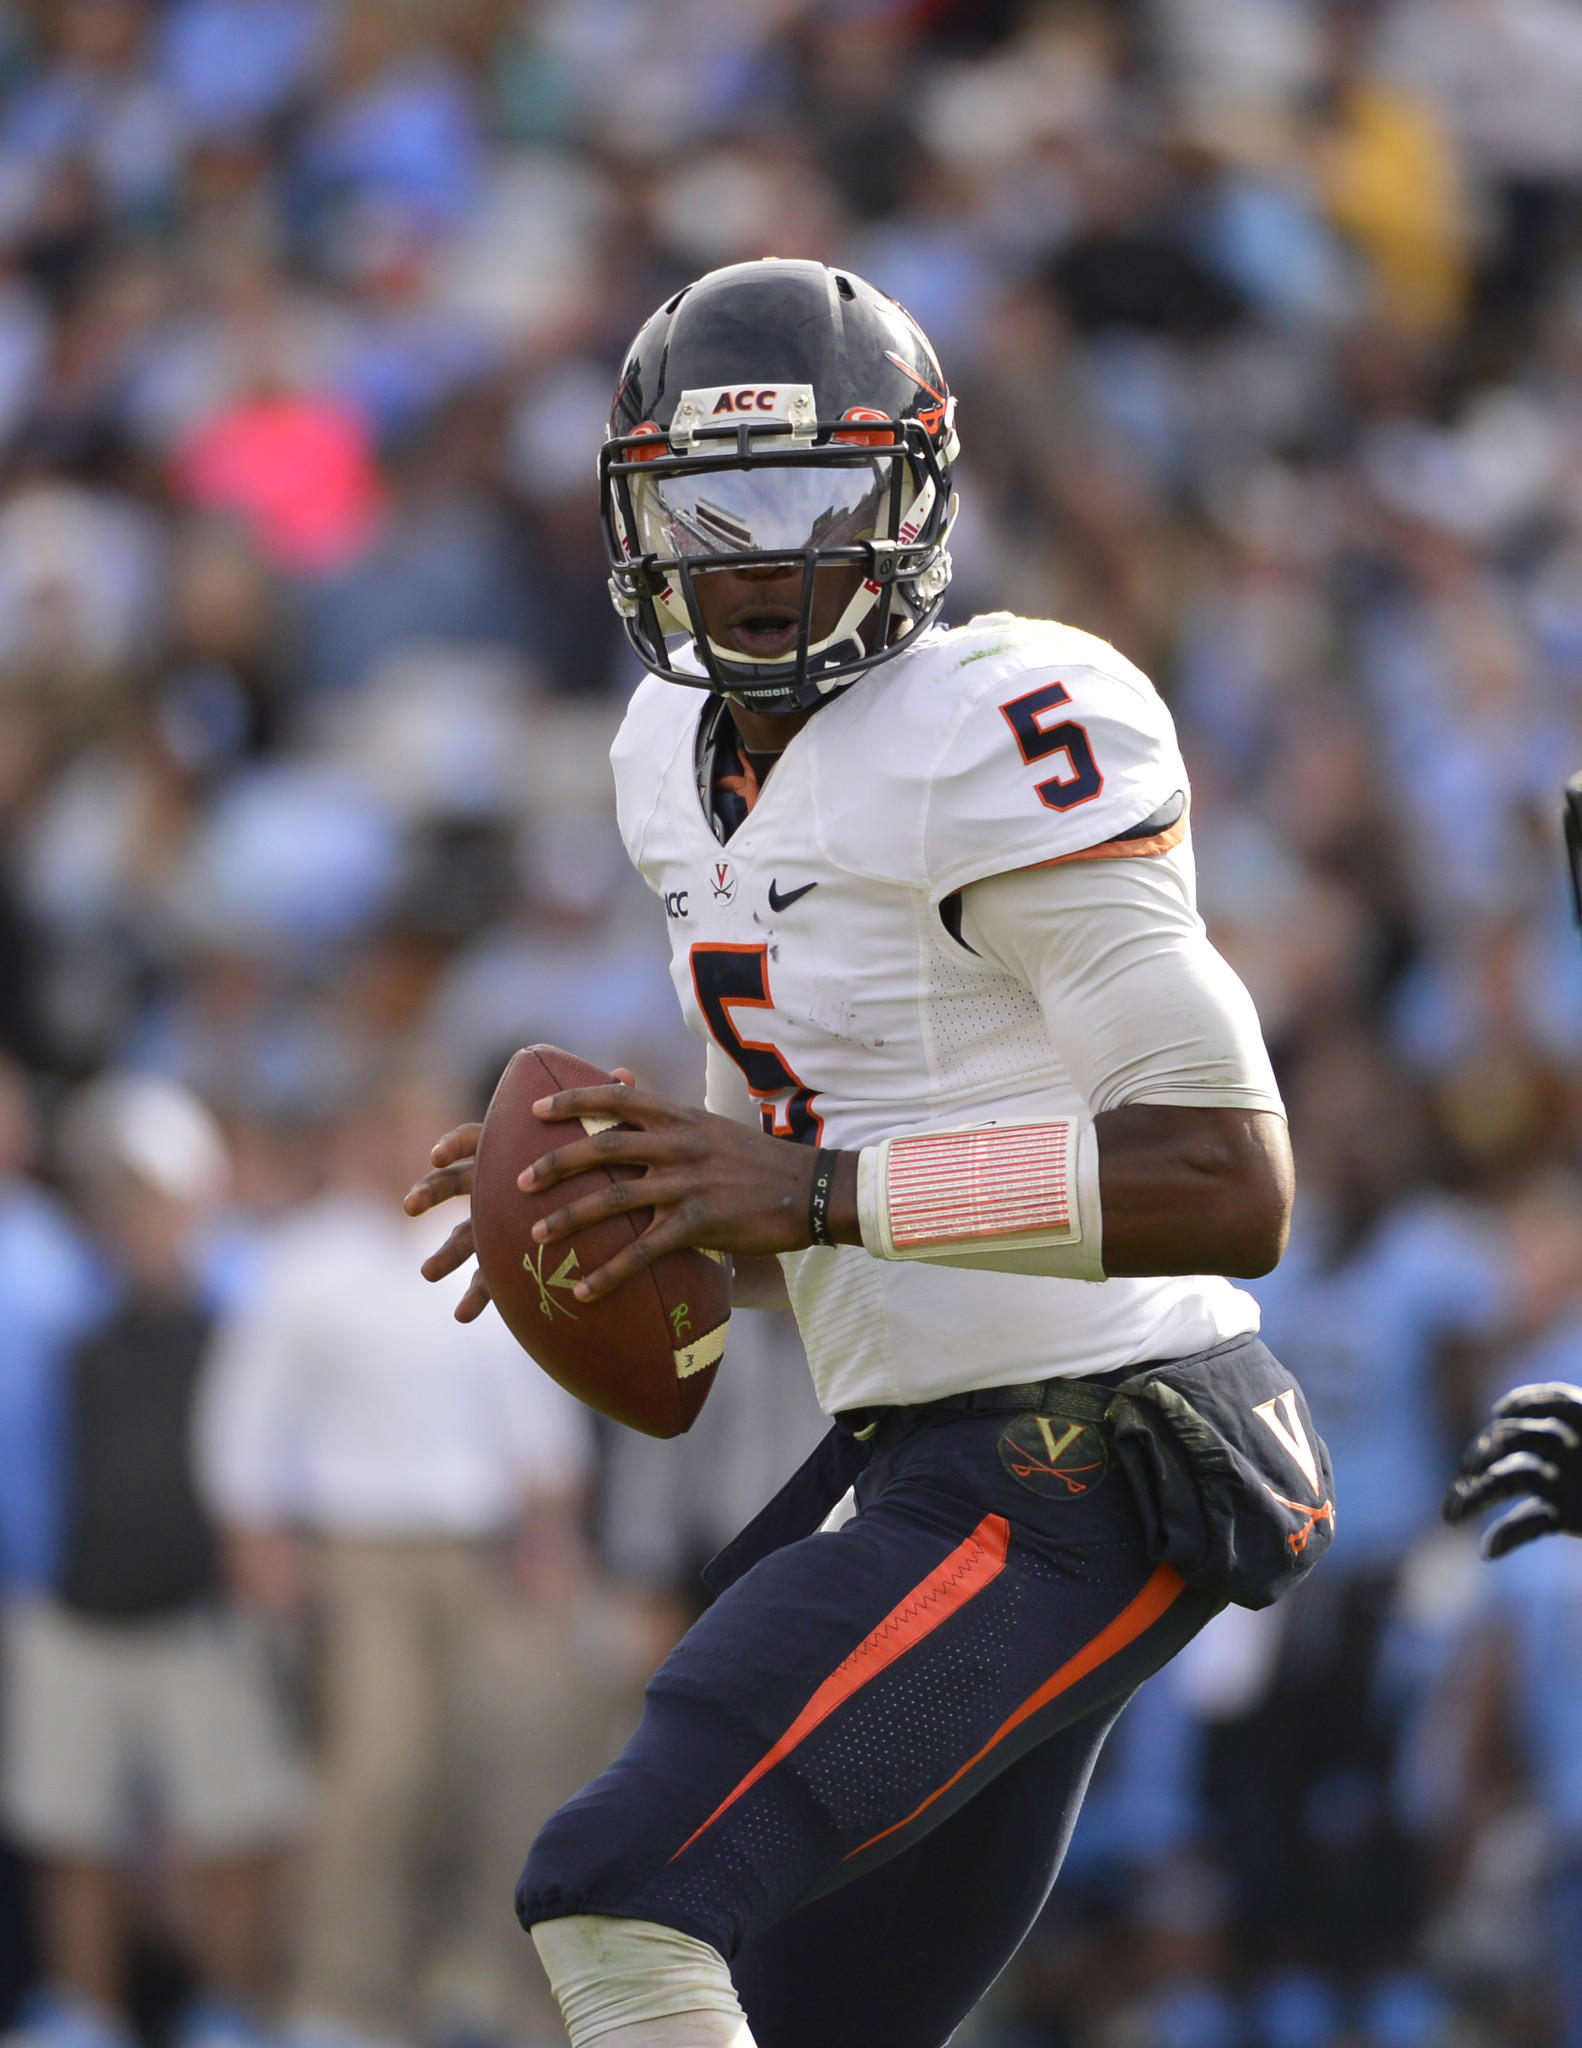 U.Va. quarterback David Watford, from Hampton, again will compete for the starting job this offseason.